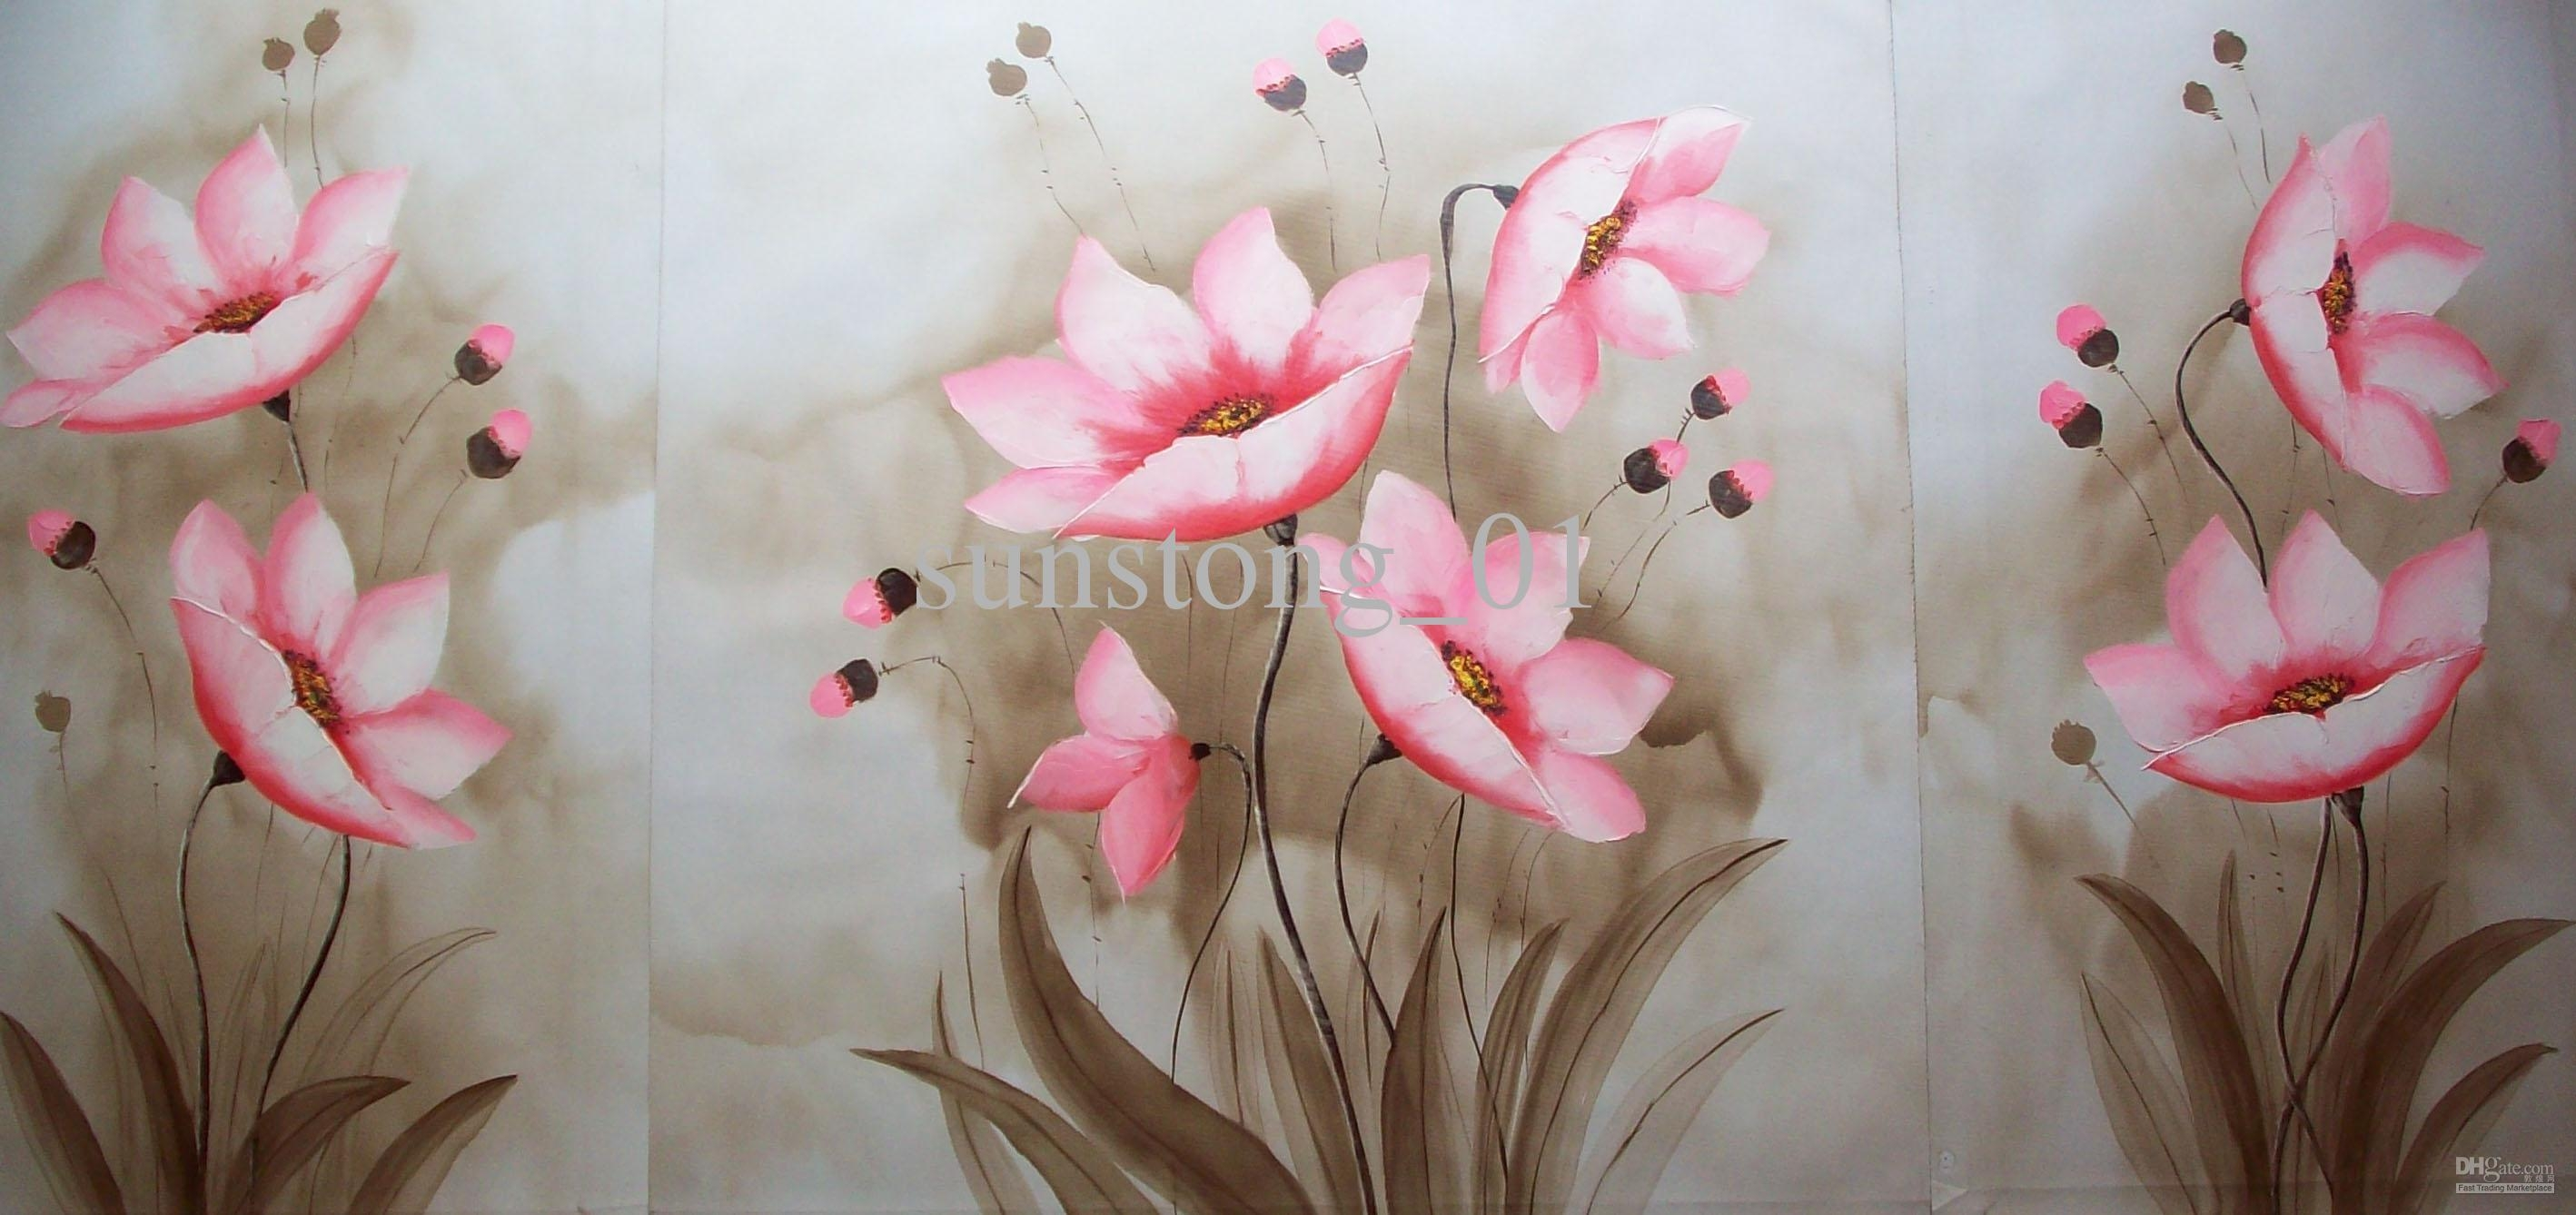 2017 Impression Group Oil Painting Nice Pink Flowers In Lake Pertaining To Pink Flower Wall Art (Image 1 of 20)